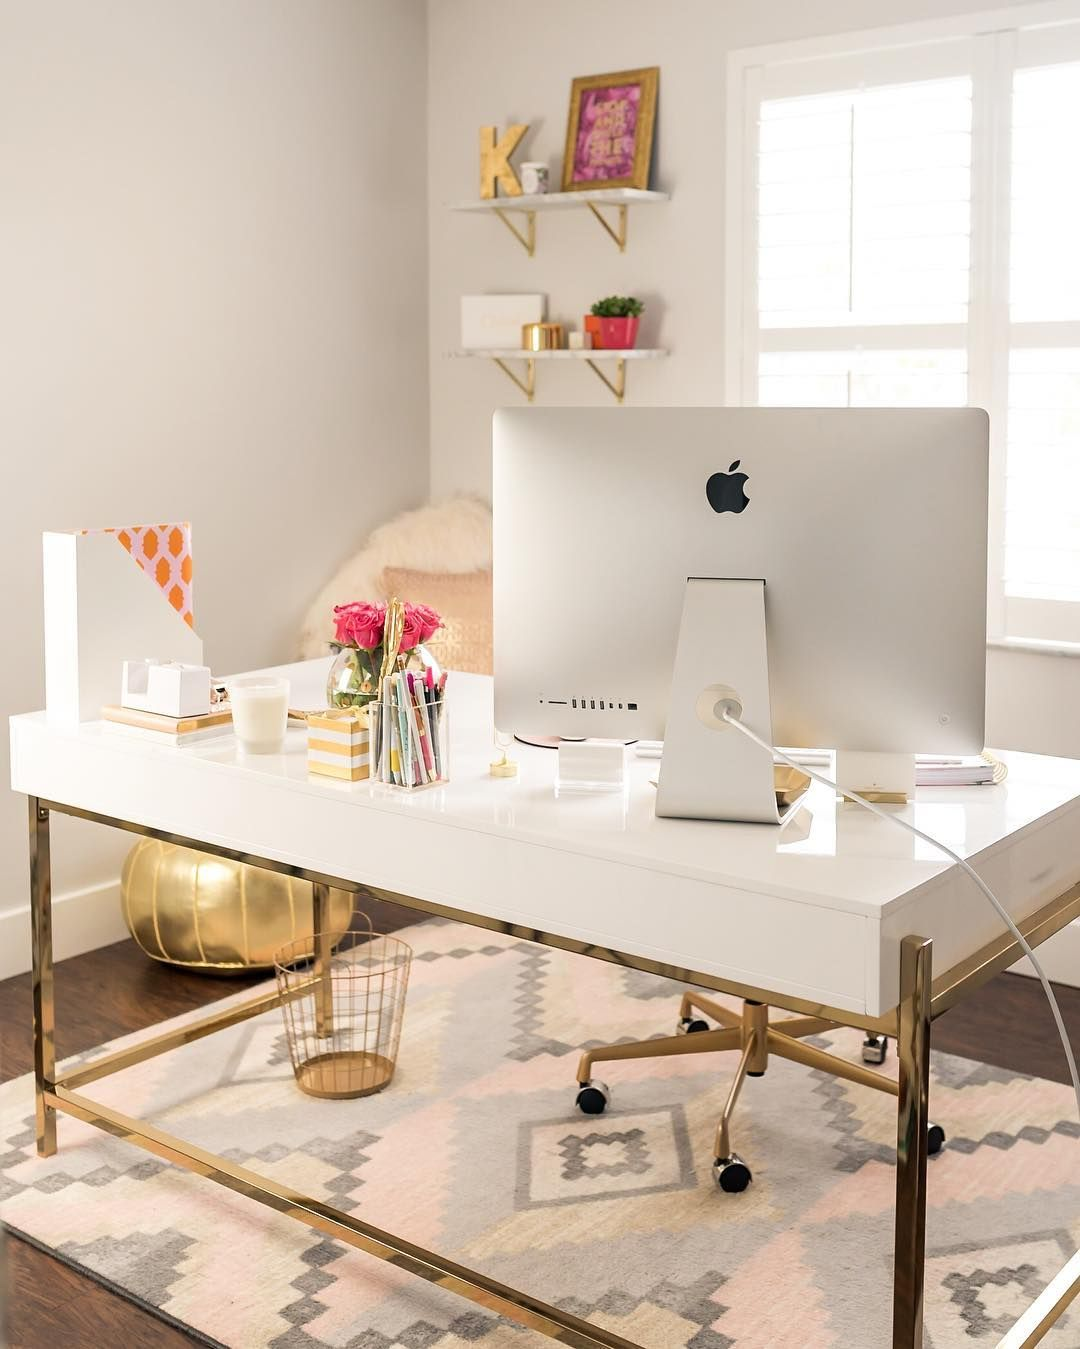 Save this office inspo for some of the best workspace decor on Instagram.